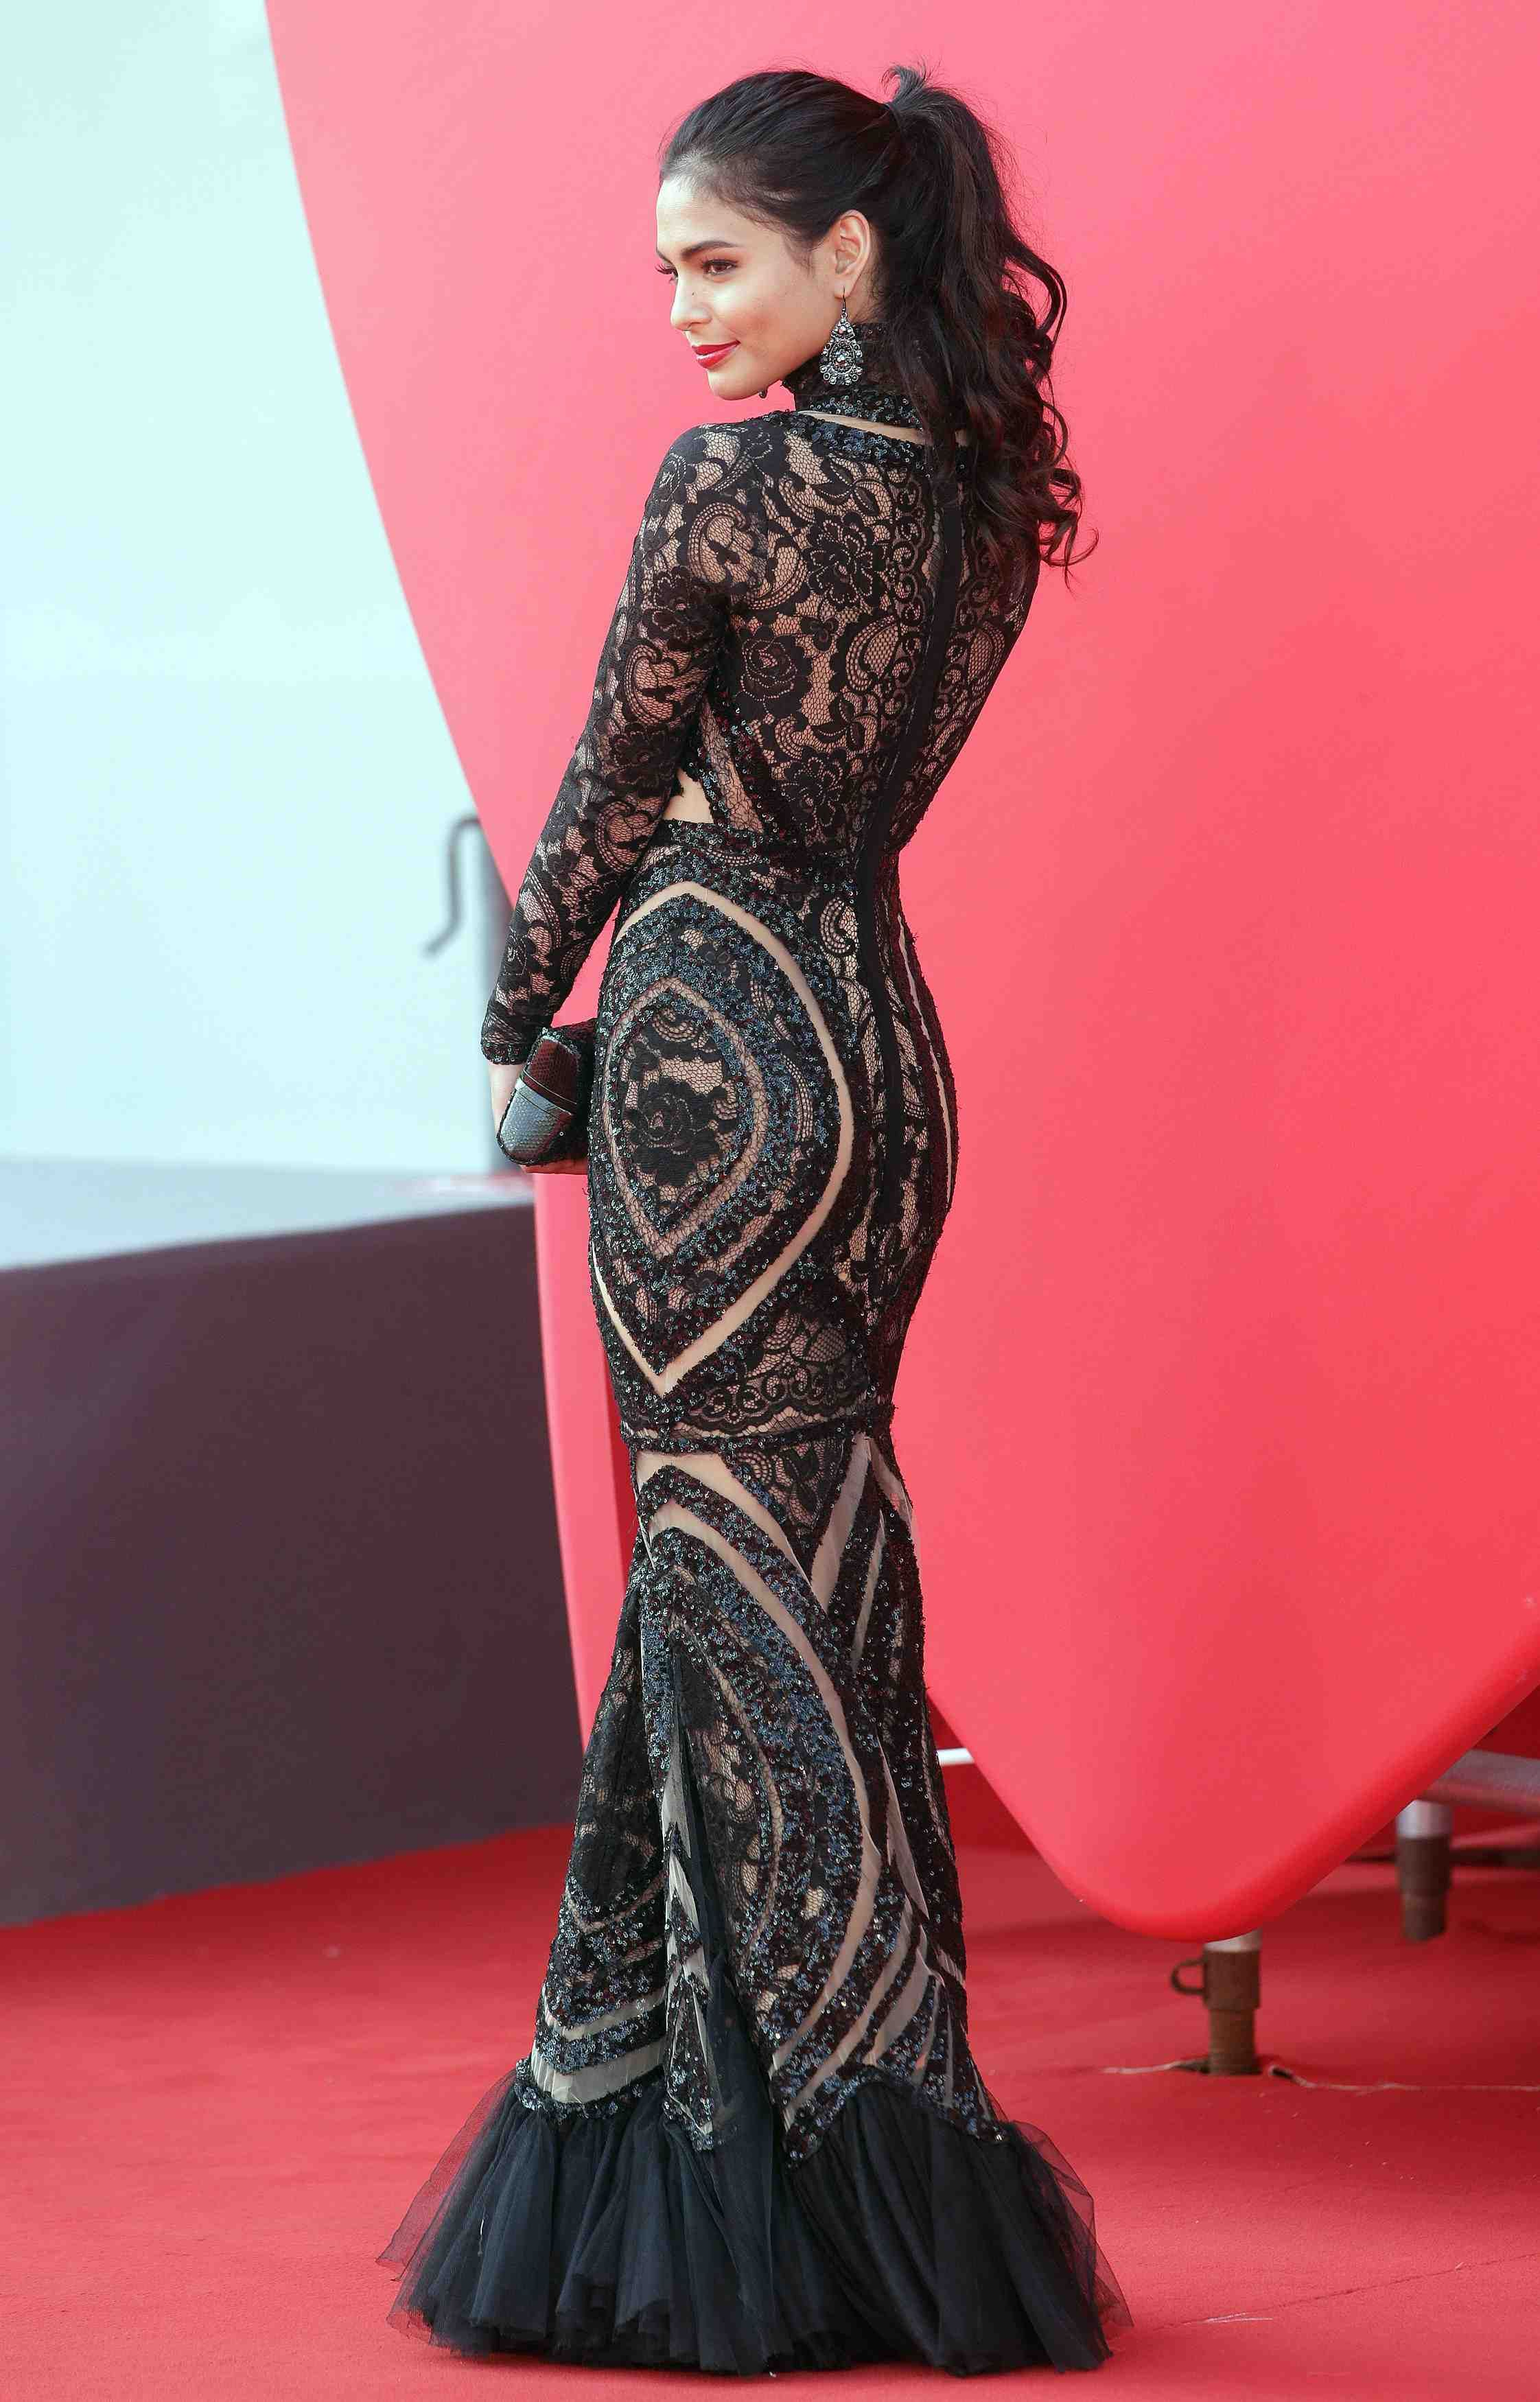 Pin lovi poe for tattoo pictures to pin on pinterest on pinterest - Loving This Dress Worn By Philippine Actress Lovi Poe At The Venice Film Festival